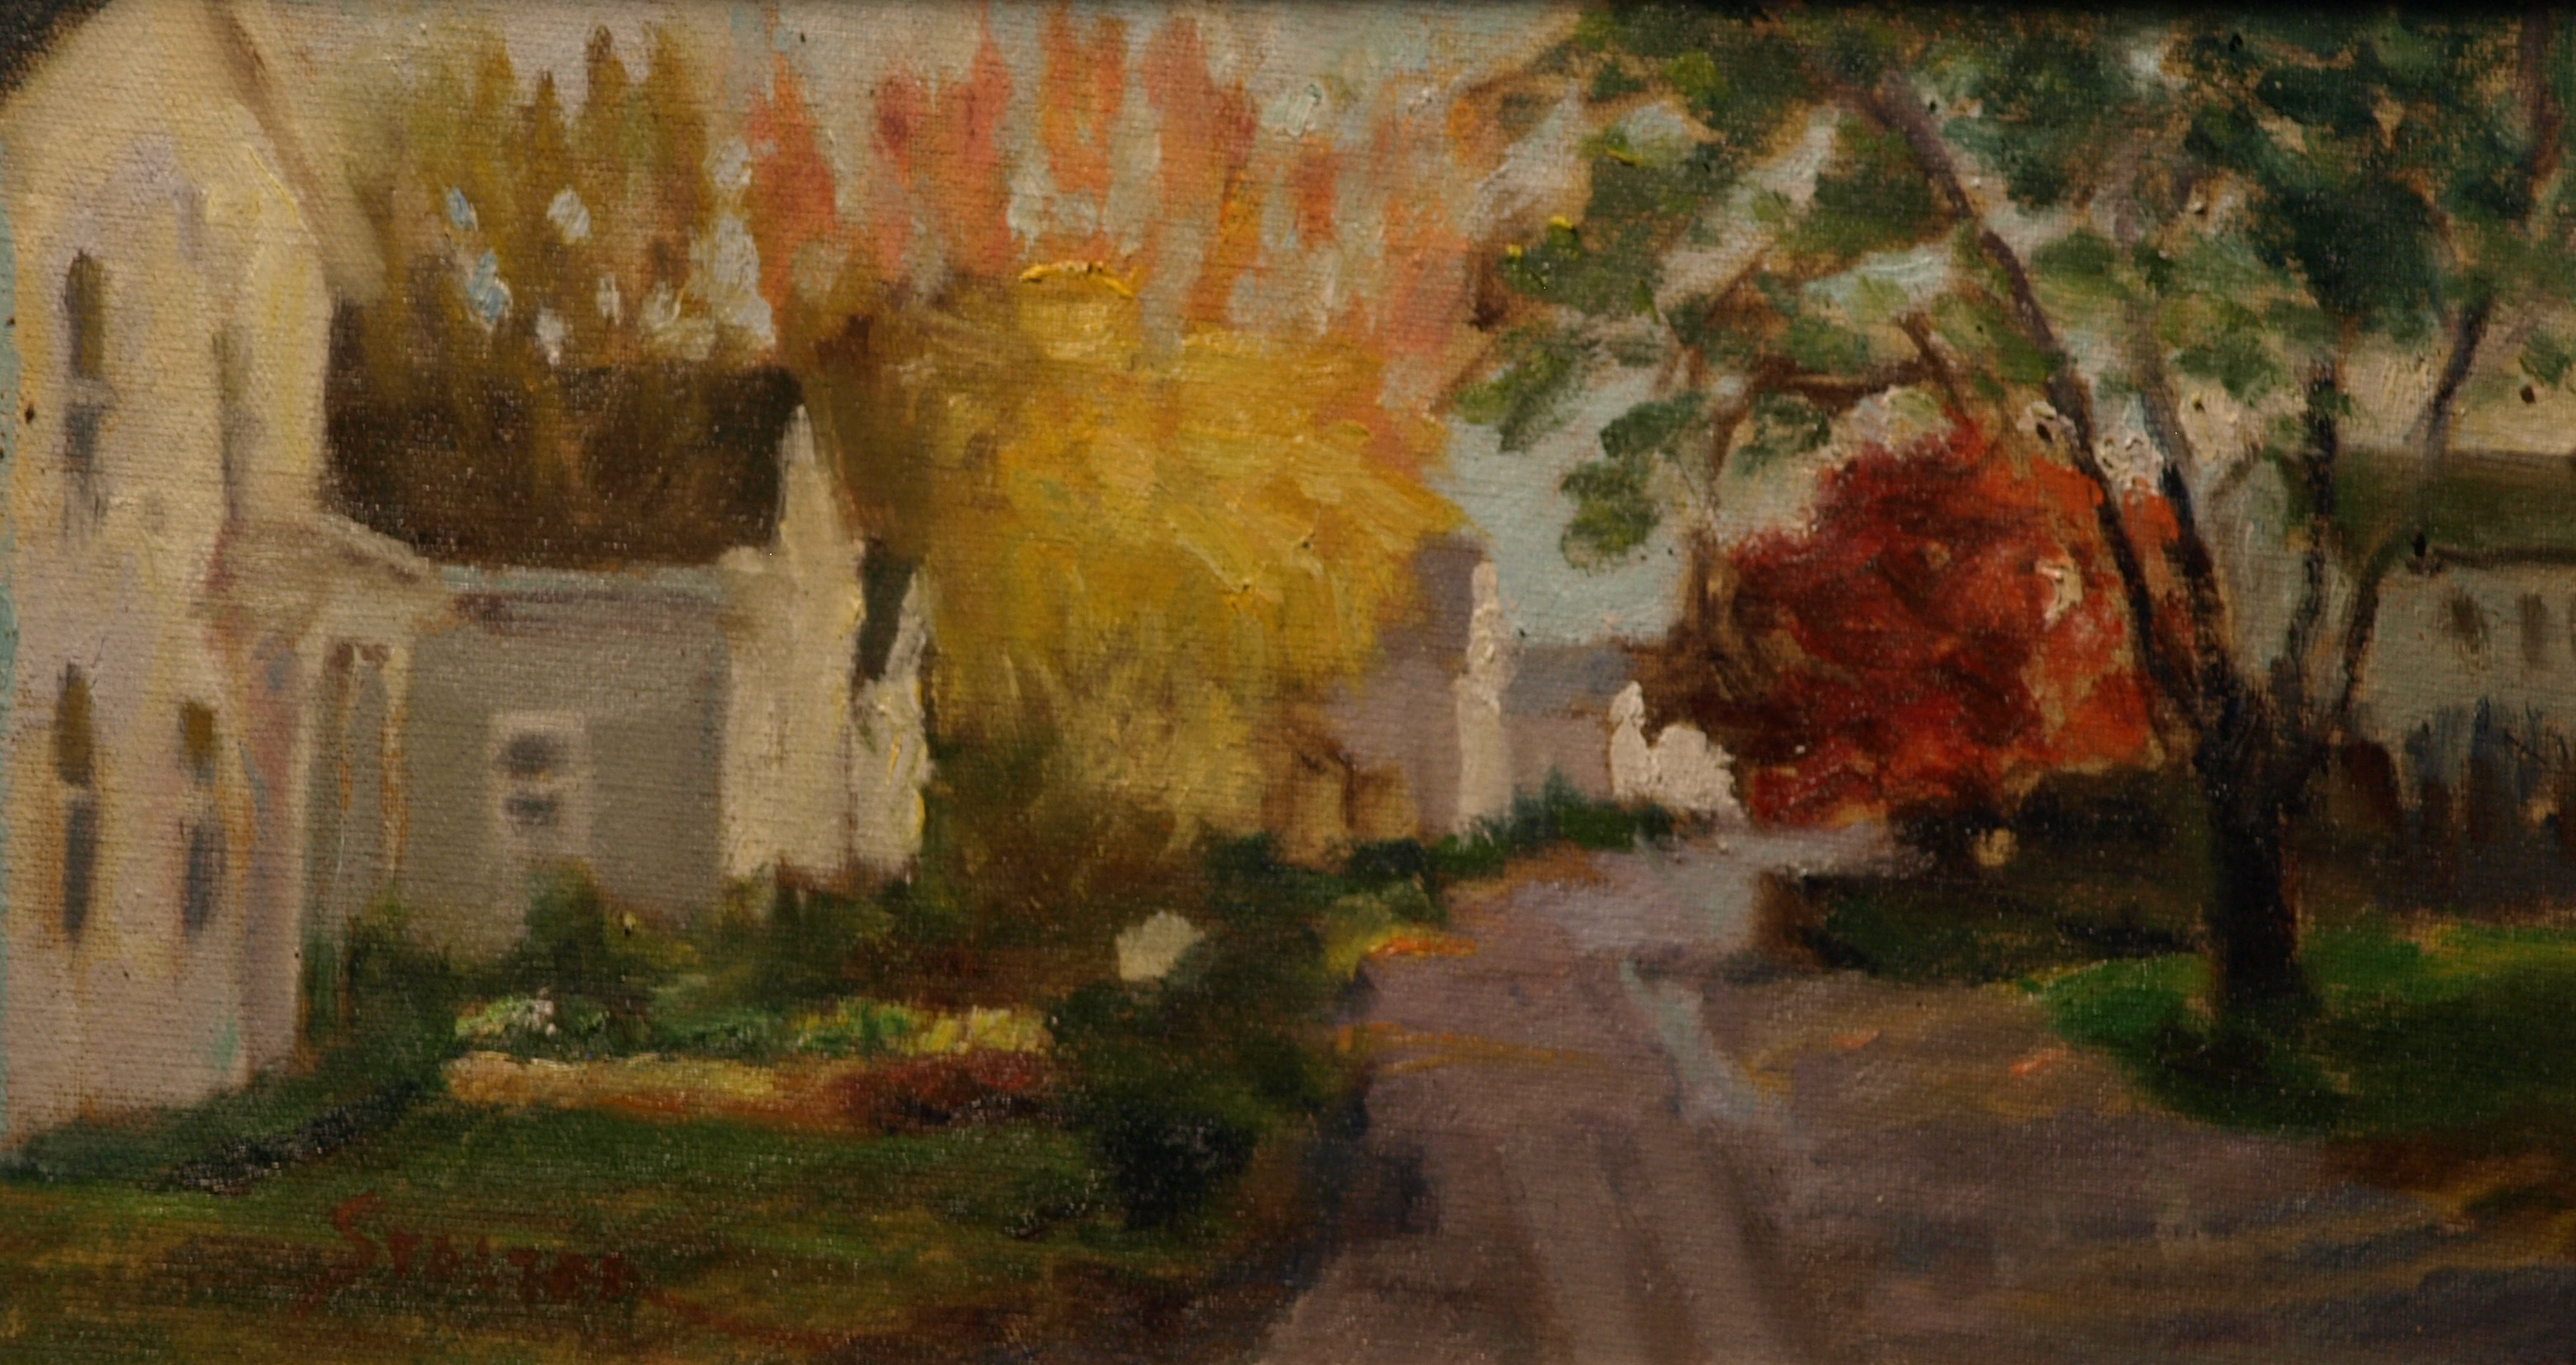 Street - Noank, Oil on Canvas on Panel, 8 x 14 Inches, by Richard Stalter, $225